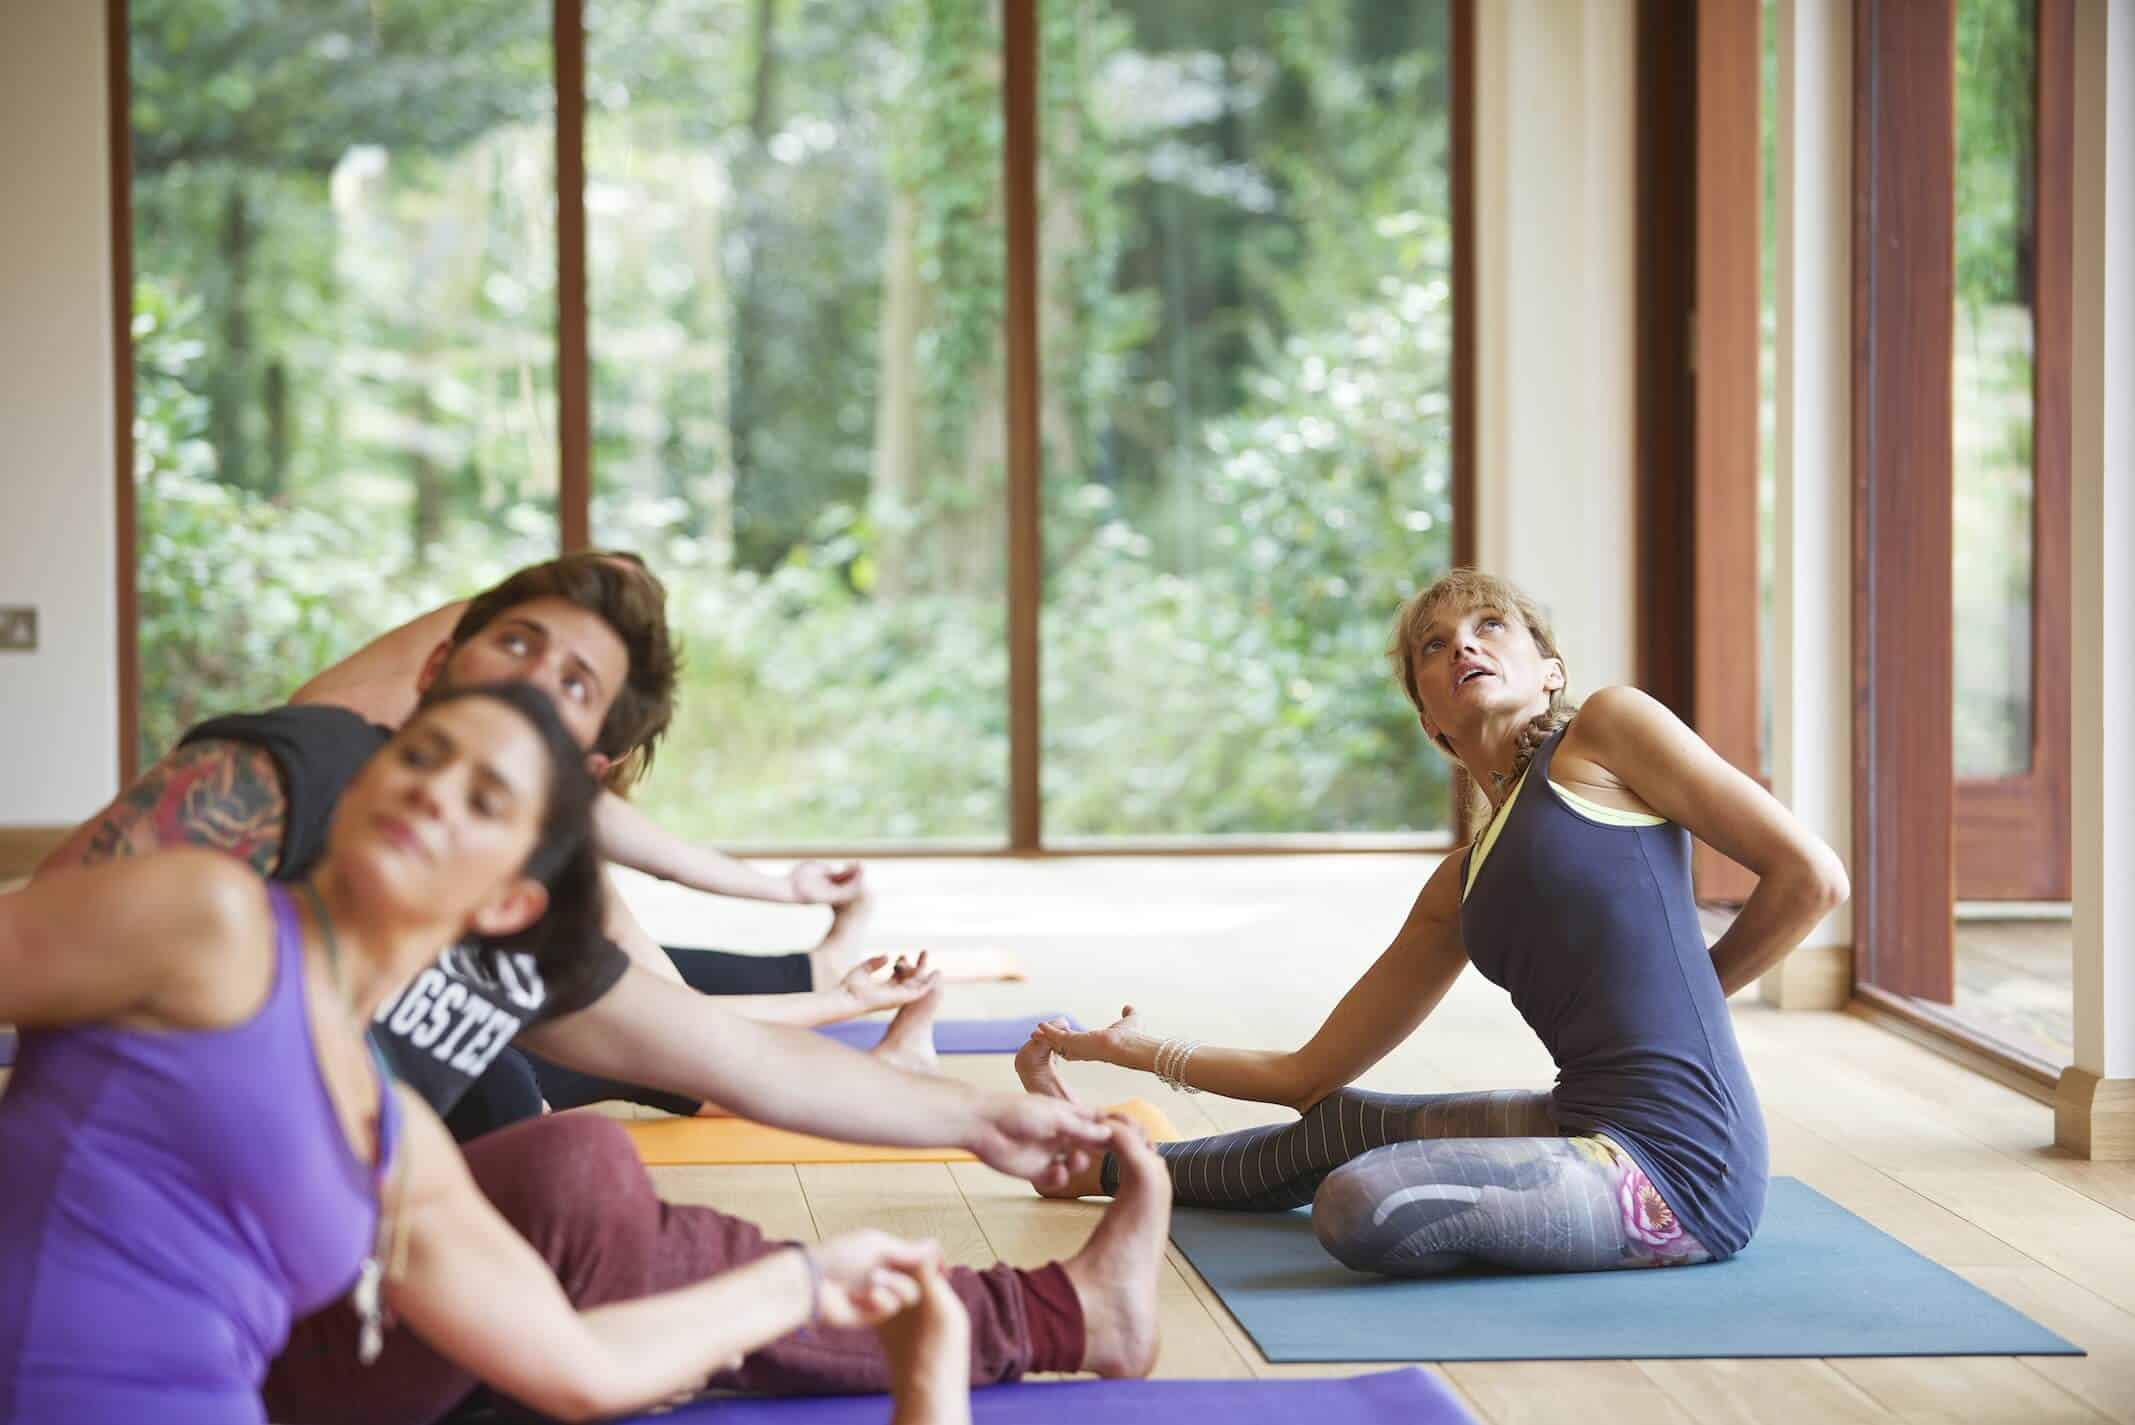 Here's another close focus shot of yoga in action in this warm, natural space. The surrounding forest is visible throughout the interior.